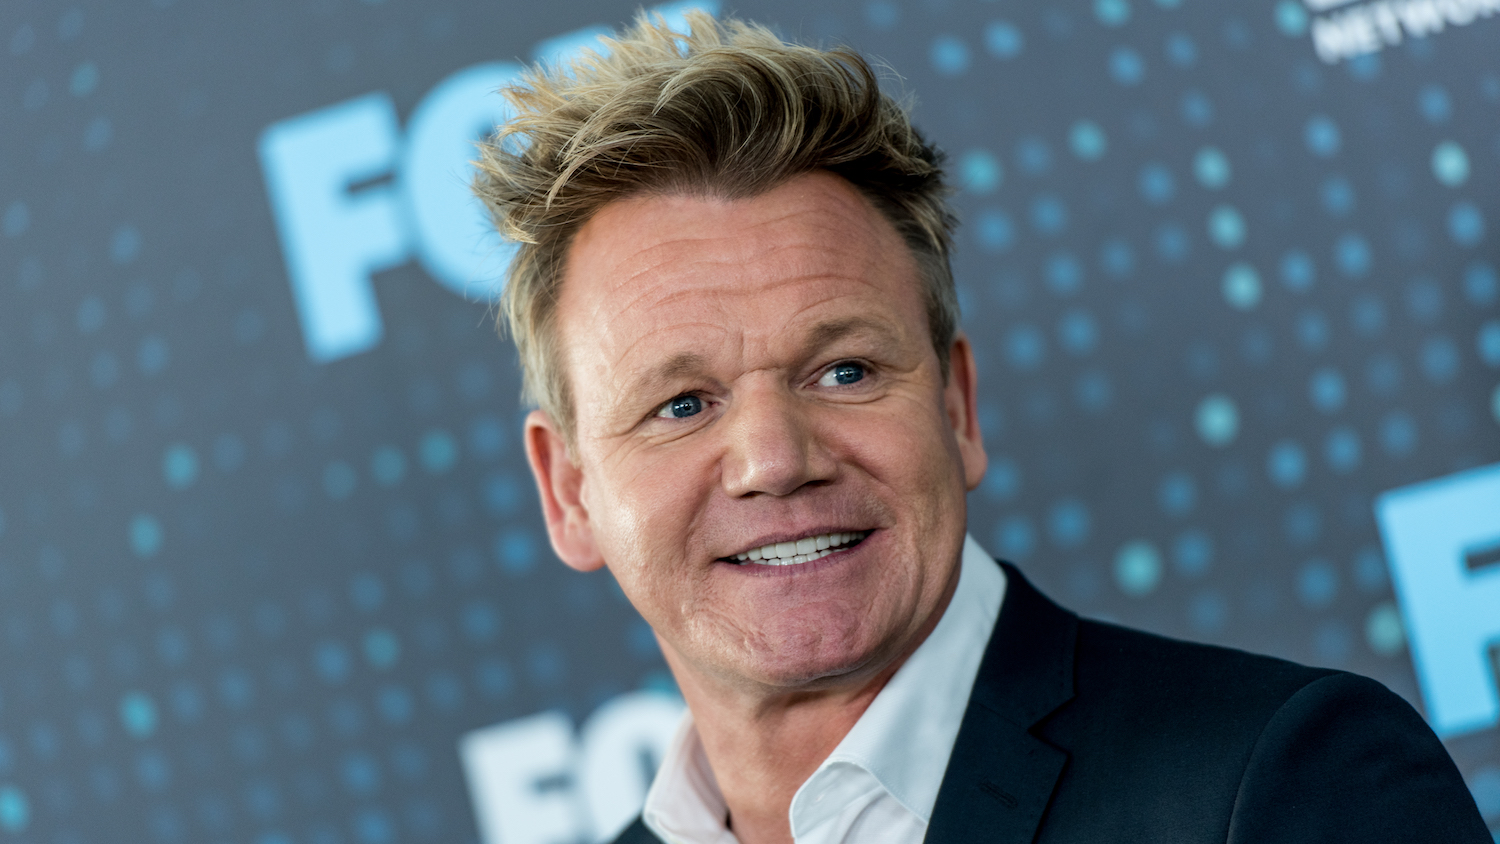 New Gordon Ramsay interview